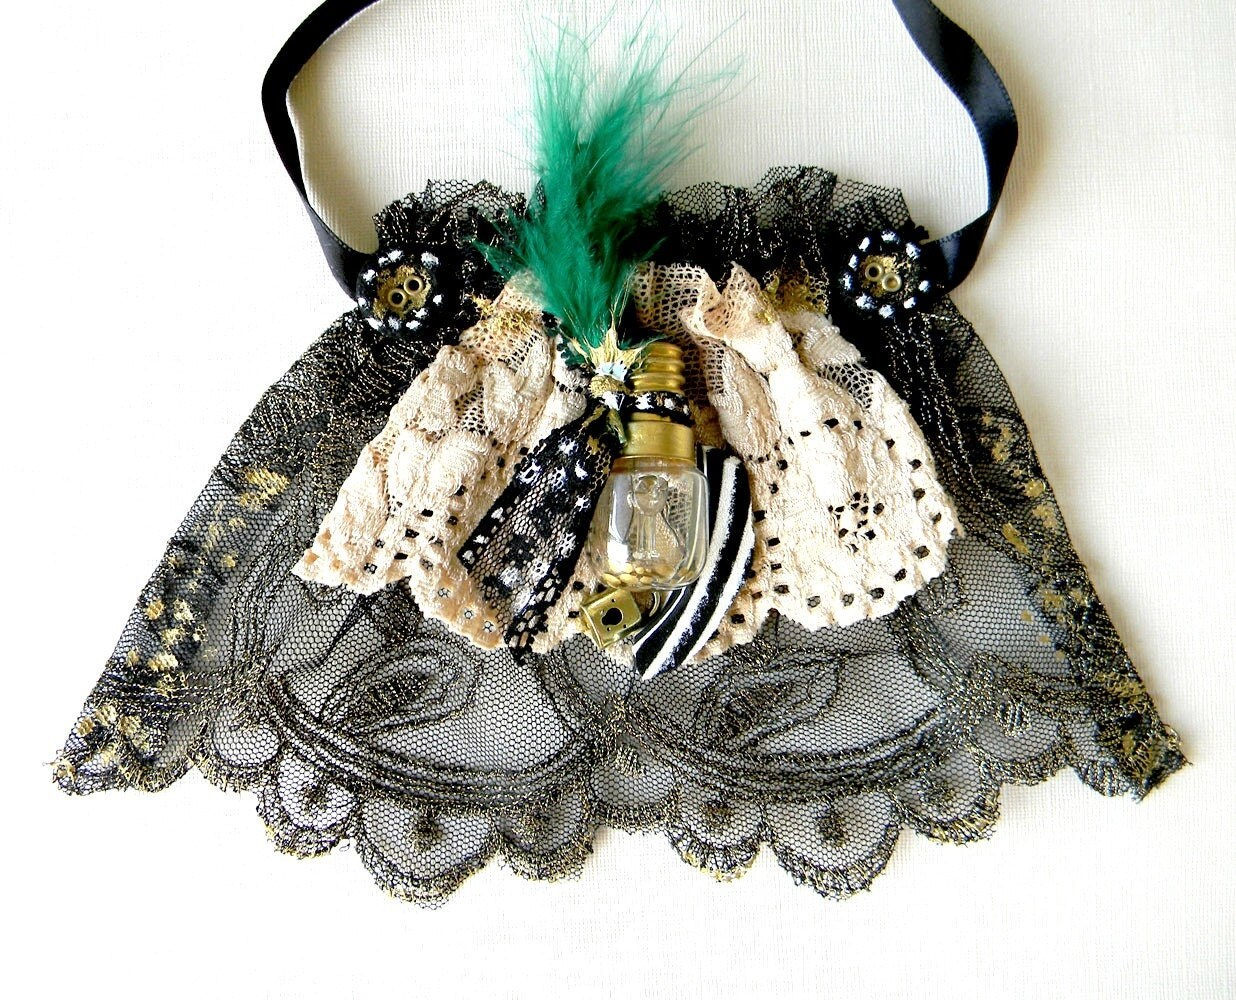 Victorian jabot, necktie,green black, ruffle, upcycle jabot, vintage, spring fashion, feather, romantic steampunk , nude lace, one of a kind - Elyseeart